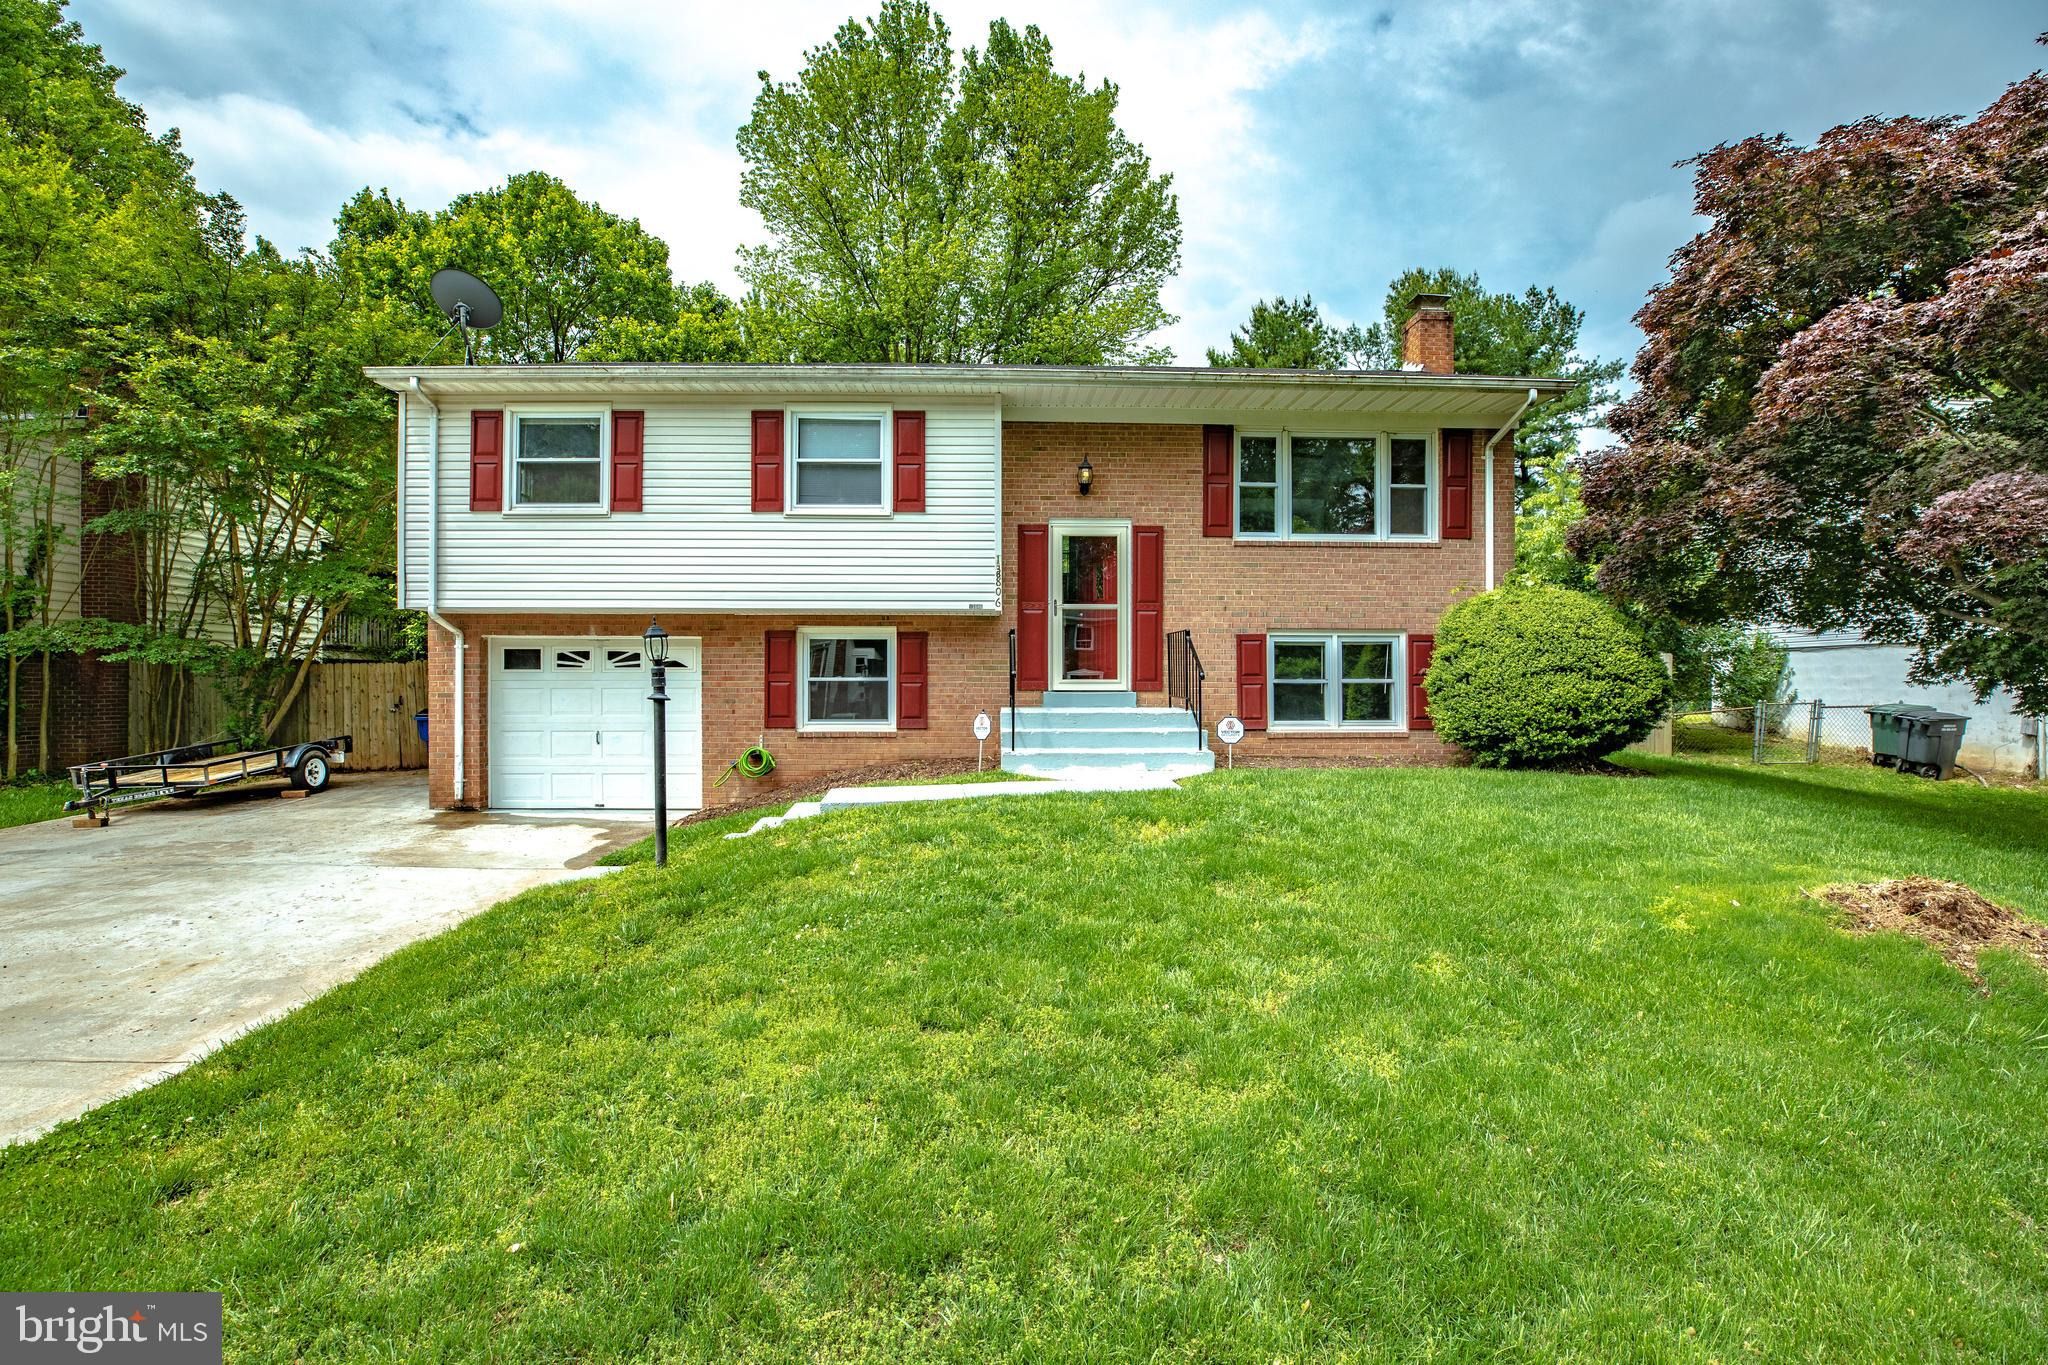 Upgraded Surry model 1900 sq ft FP,deck, extended concrete driveway,nice yard cs will have new paint, appliances,flooring,new baths,convenient to shopping,Potomac Mills, I95,schools. This will be a turnkey.